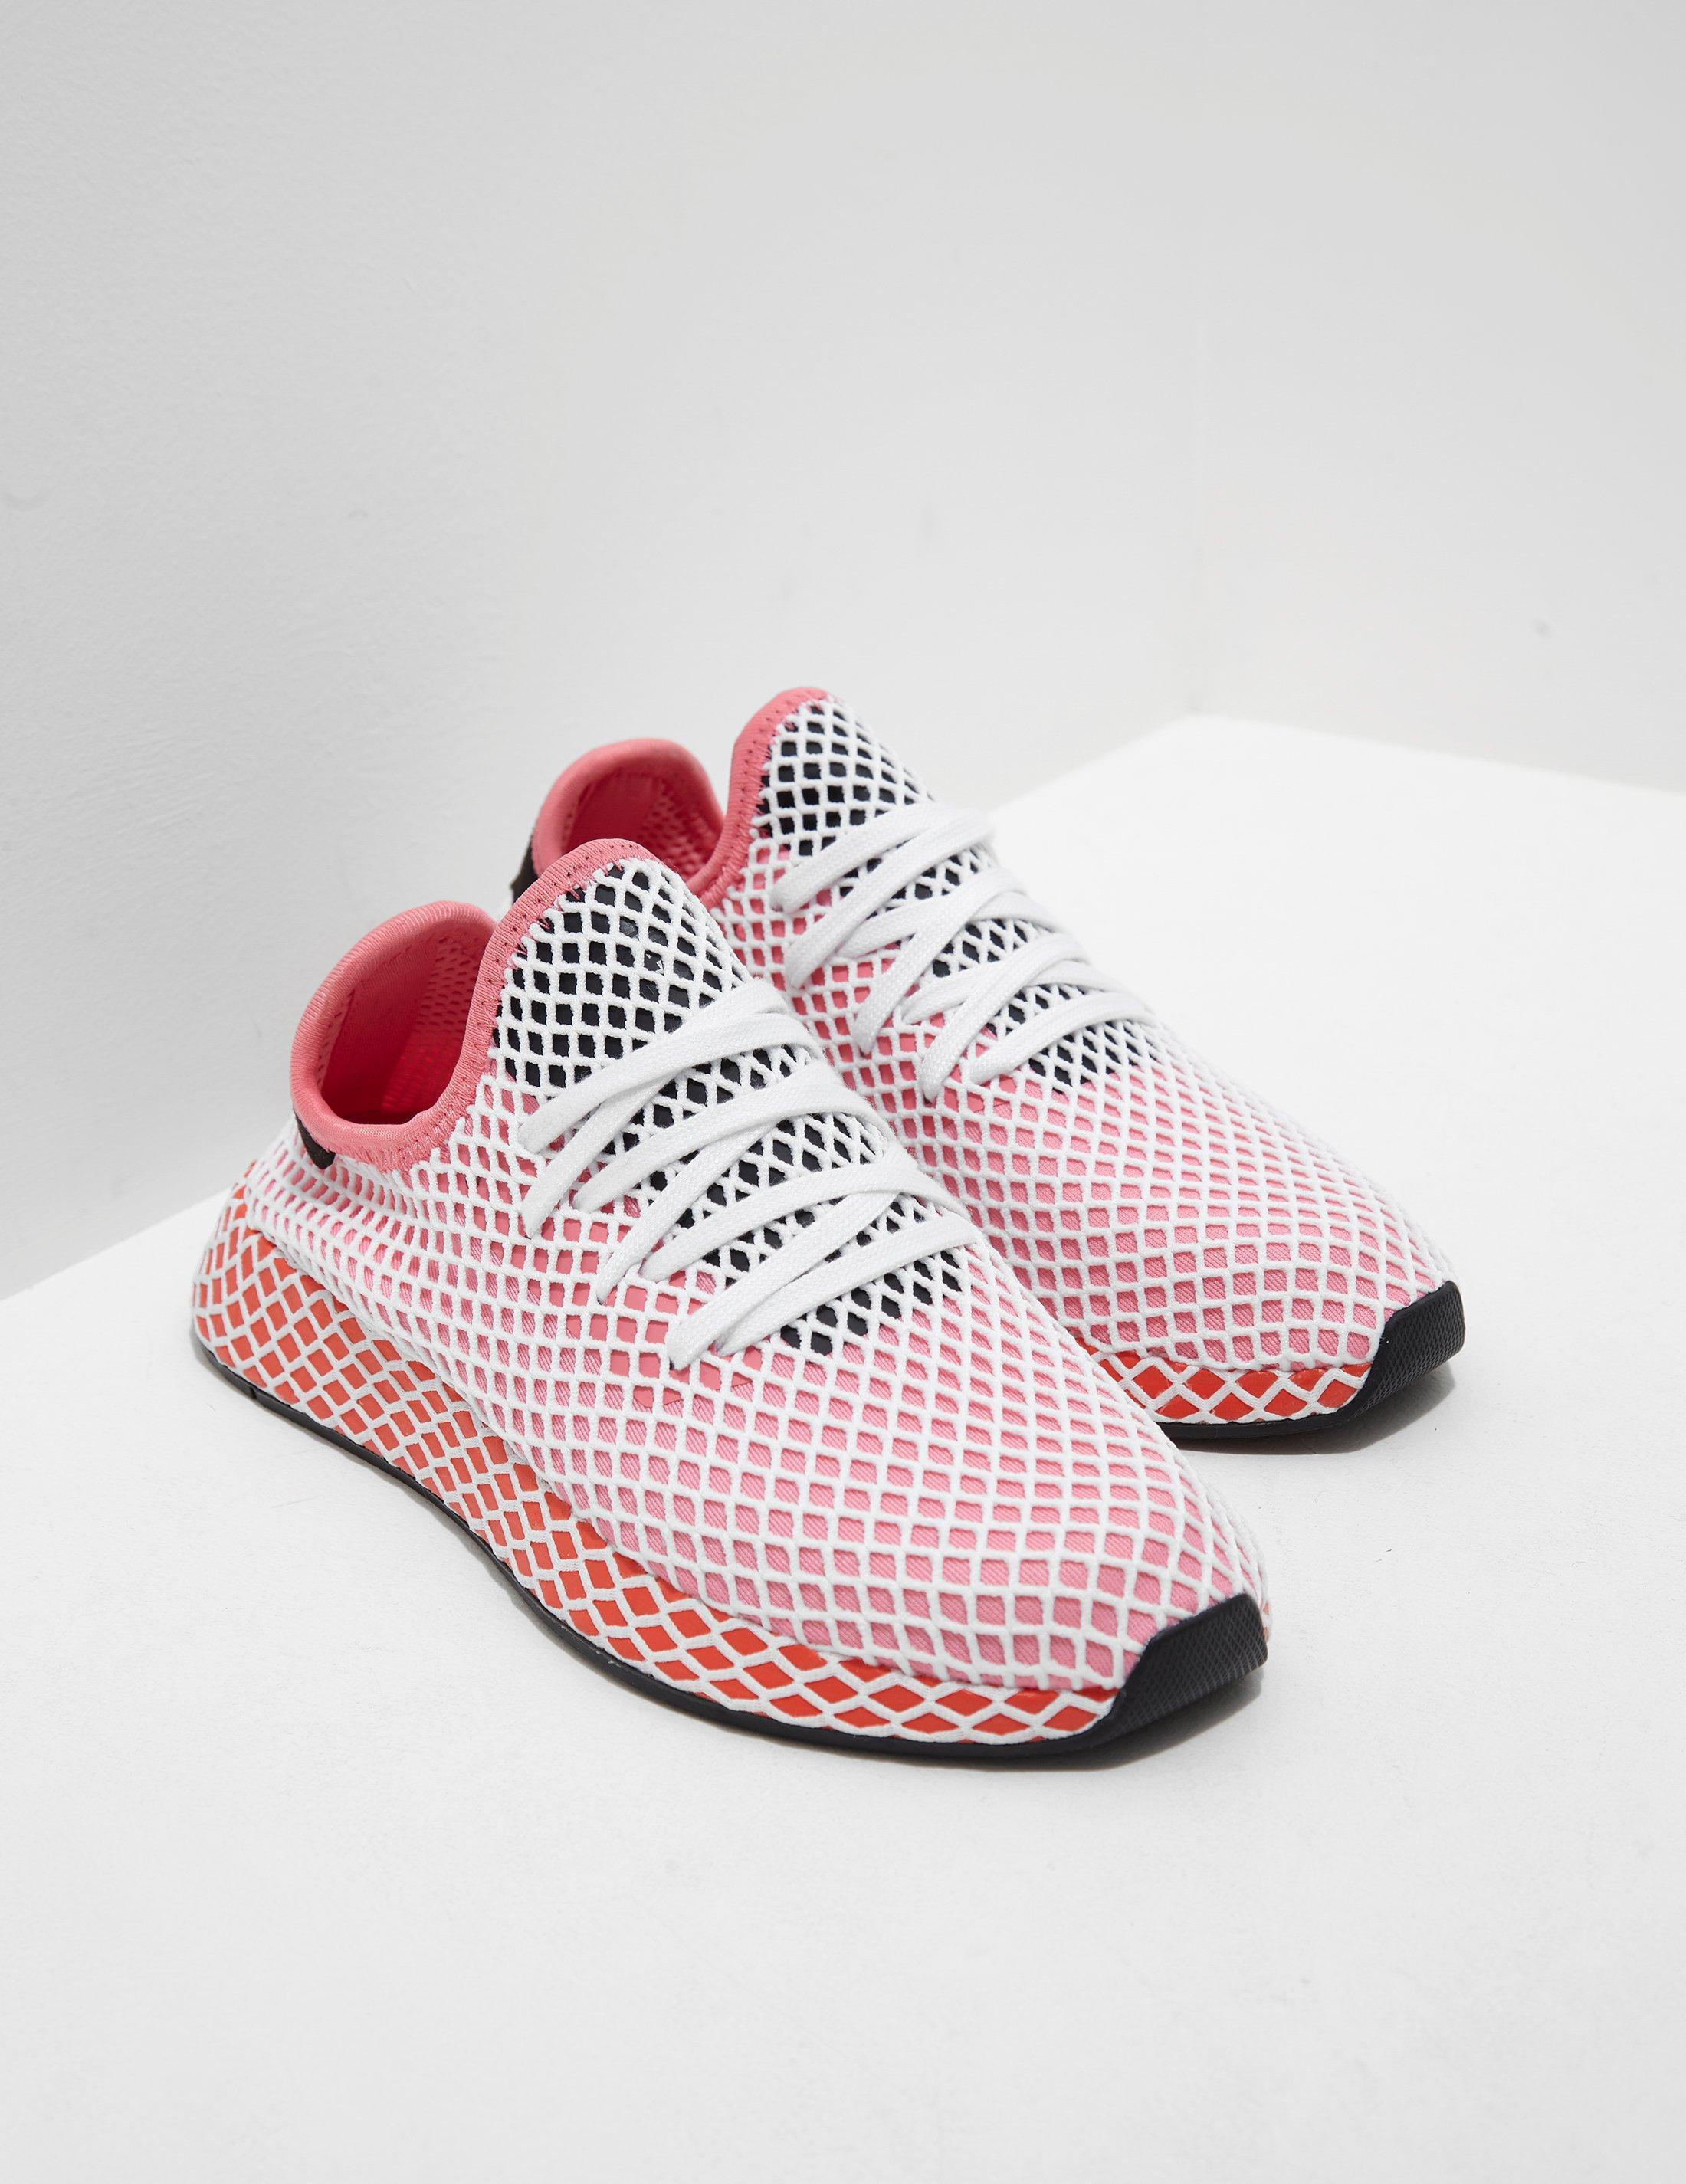 7844f21b6 Adidas Originals Womens Deerupt Women s Pink orange in Pink - Lyst